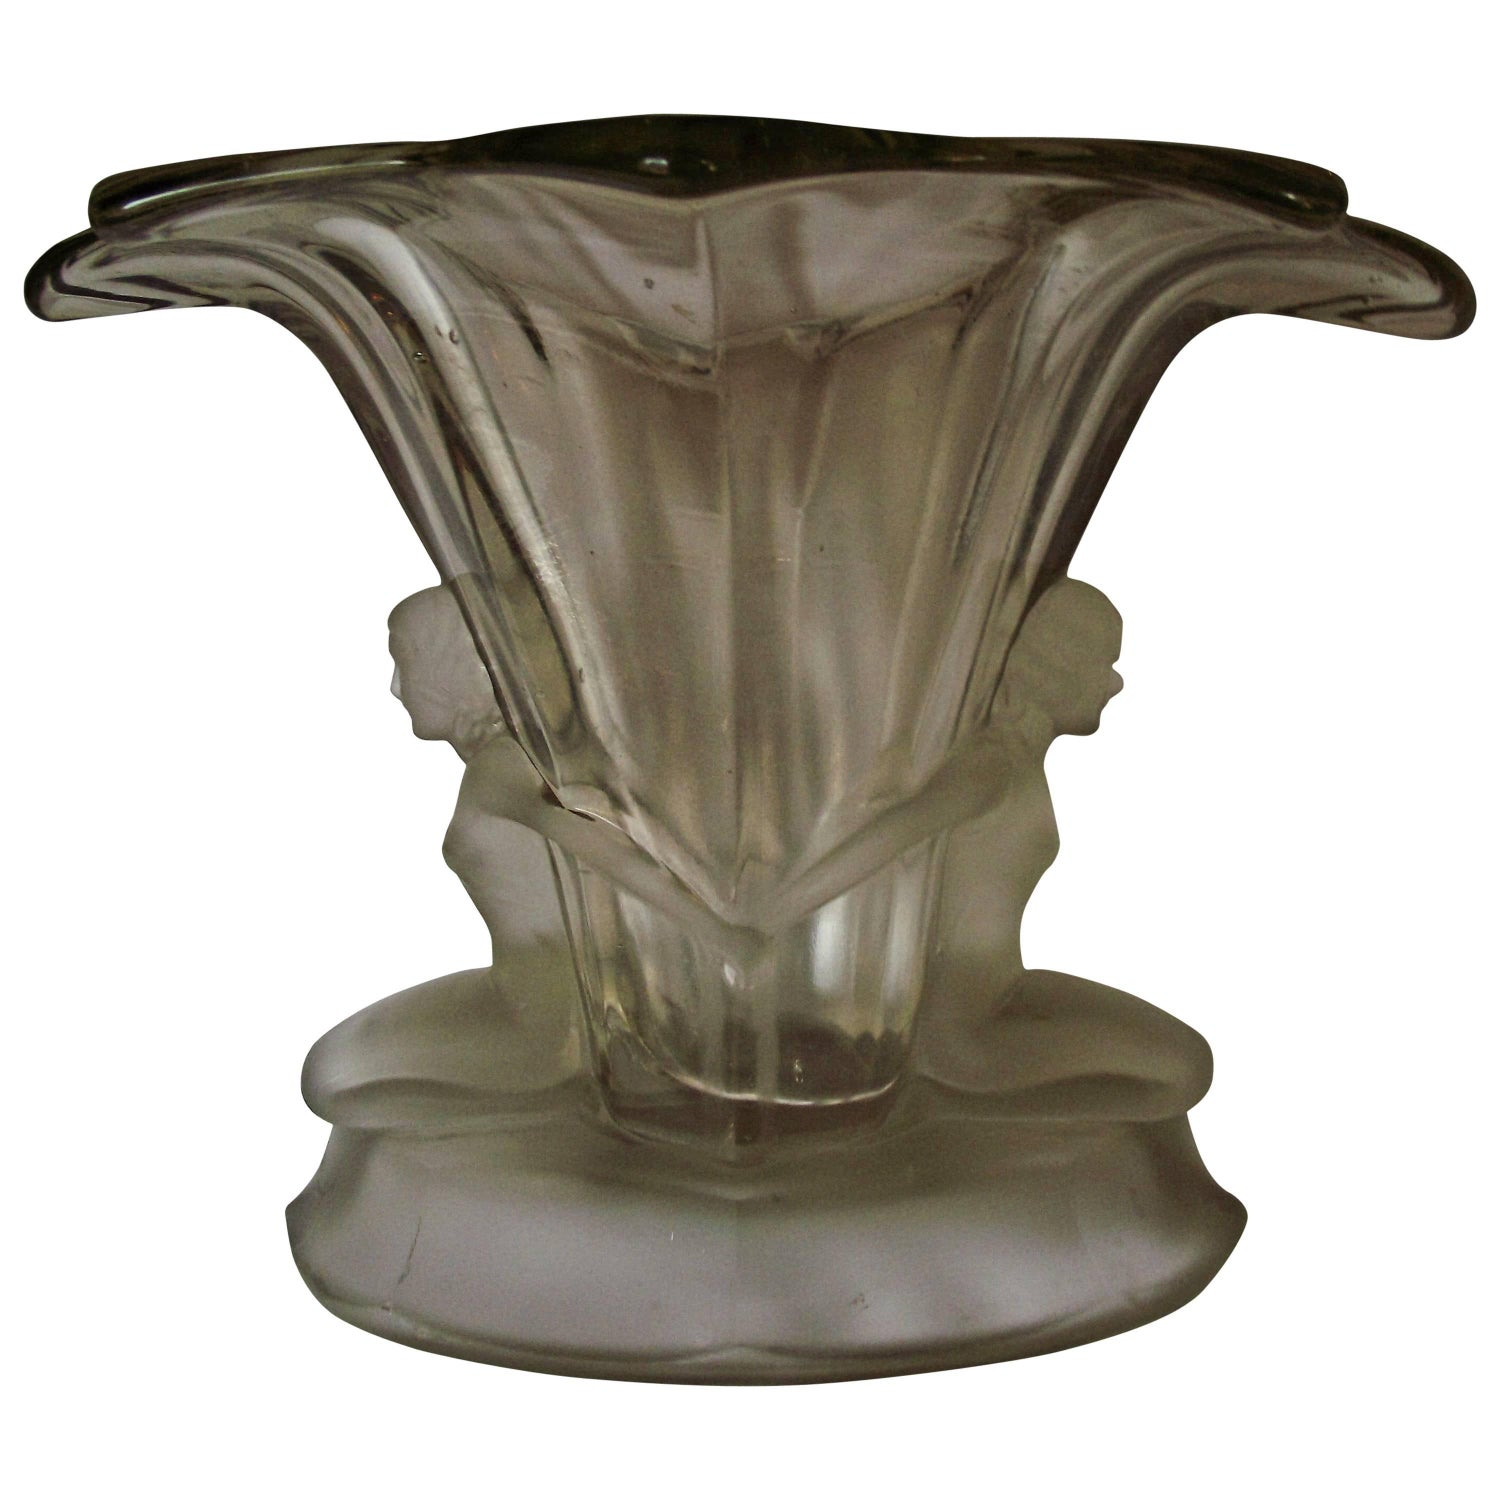 1930s vases and vessels 748 for sale at 1stdibs art deco clear glass vase antique walther and sohne figural glass vase reviewsmspy